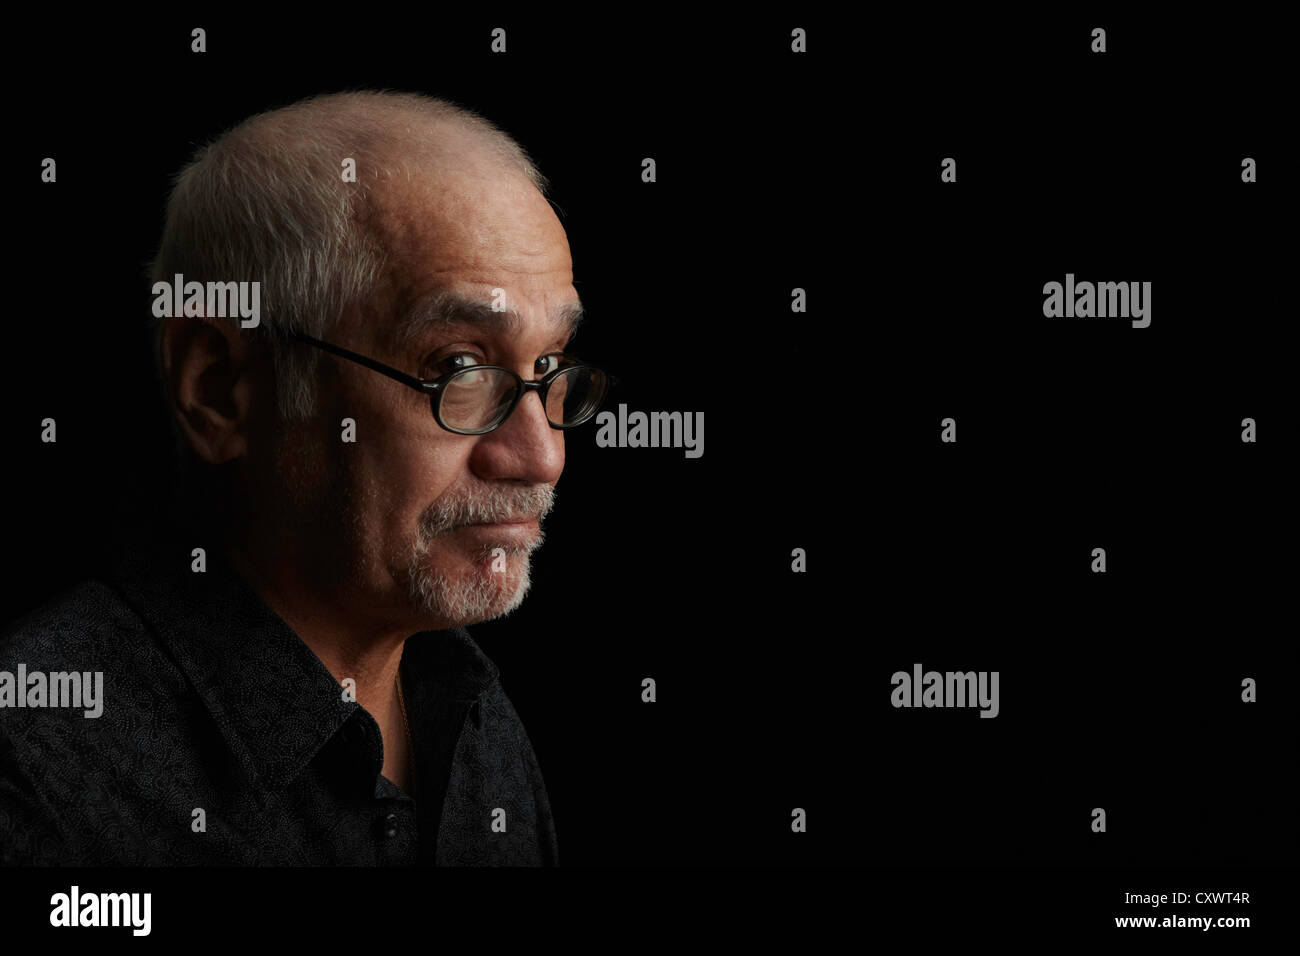 Smiling older man wearing eyeglasses Stock Photo